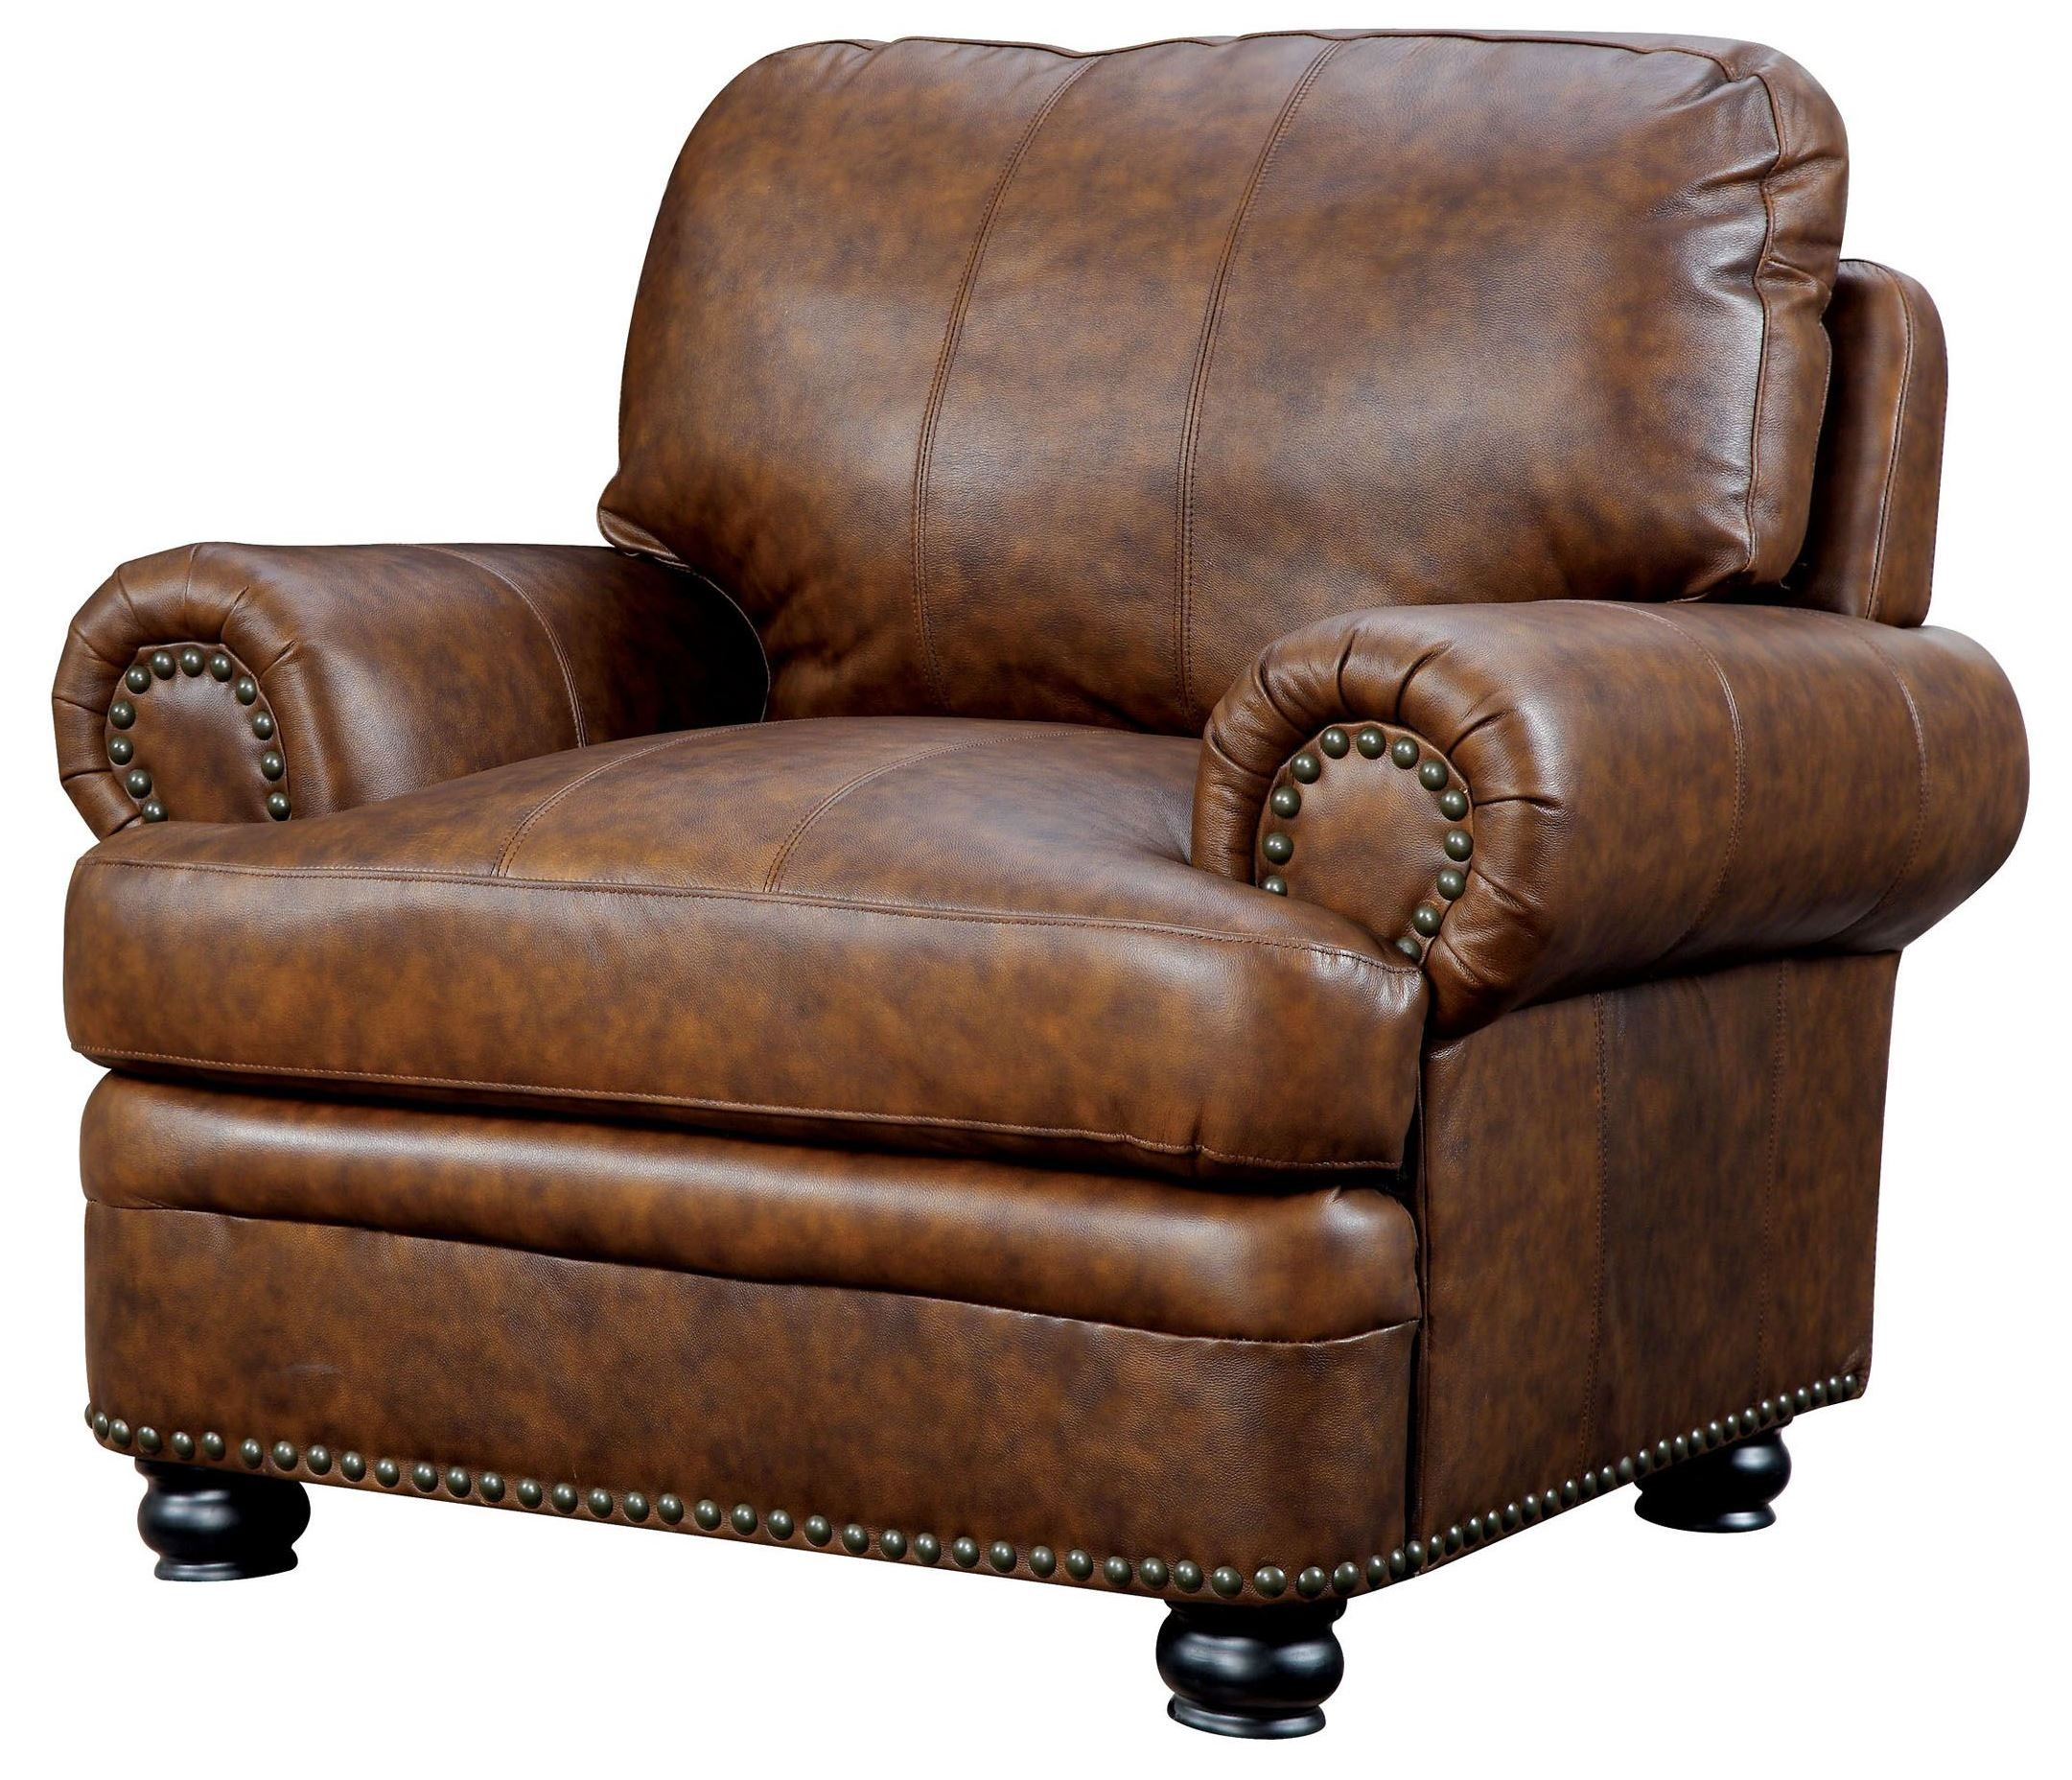 Top Grain Leather Office Chair Rheinhardt Top Grain Leather Chair From Furniture Of